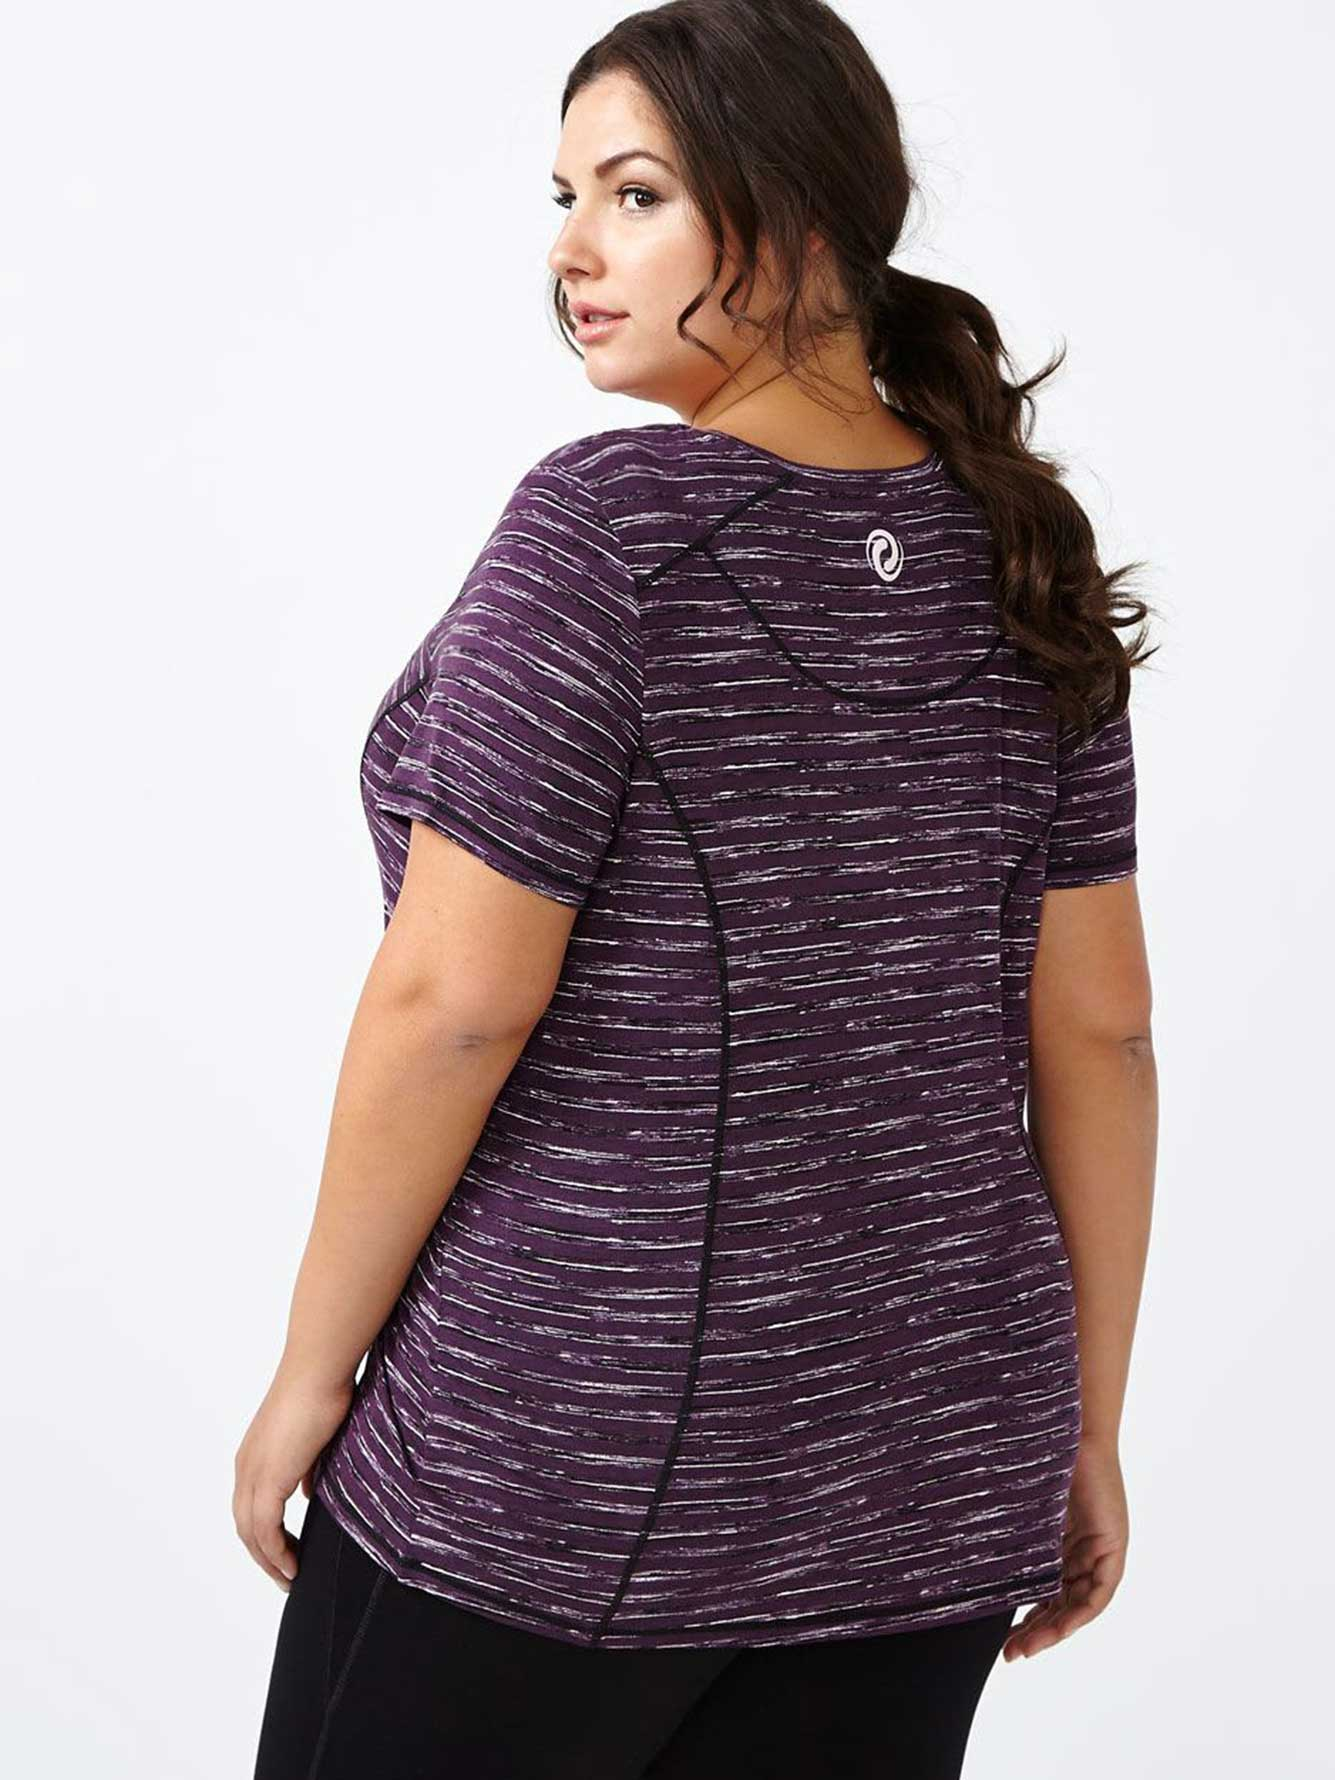 Penningtons is a Canadian retailer that specializes in plus size clothing for ladies, with locations across Canada Penningtons is part of the Reitmans' company and is also affiliated with Addition elle, (another plus size store chain.